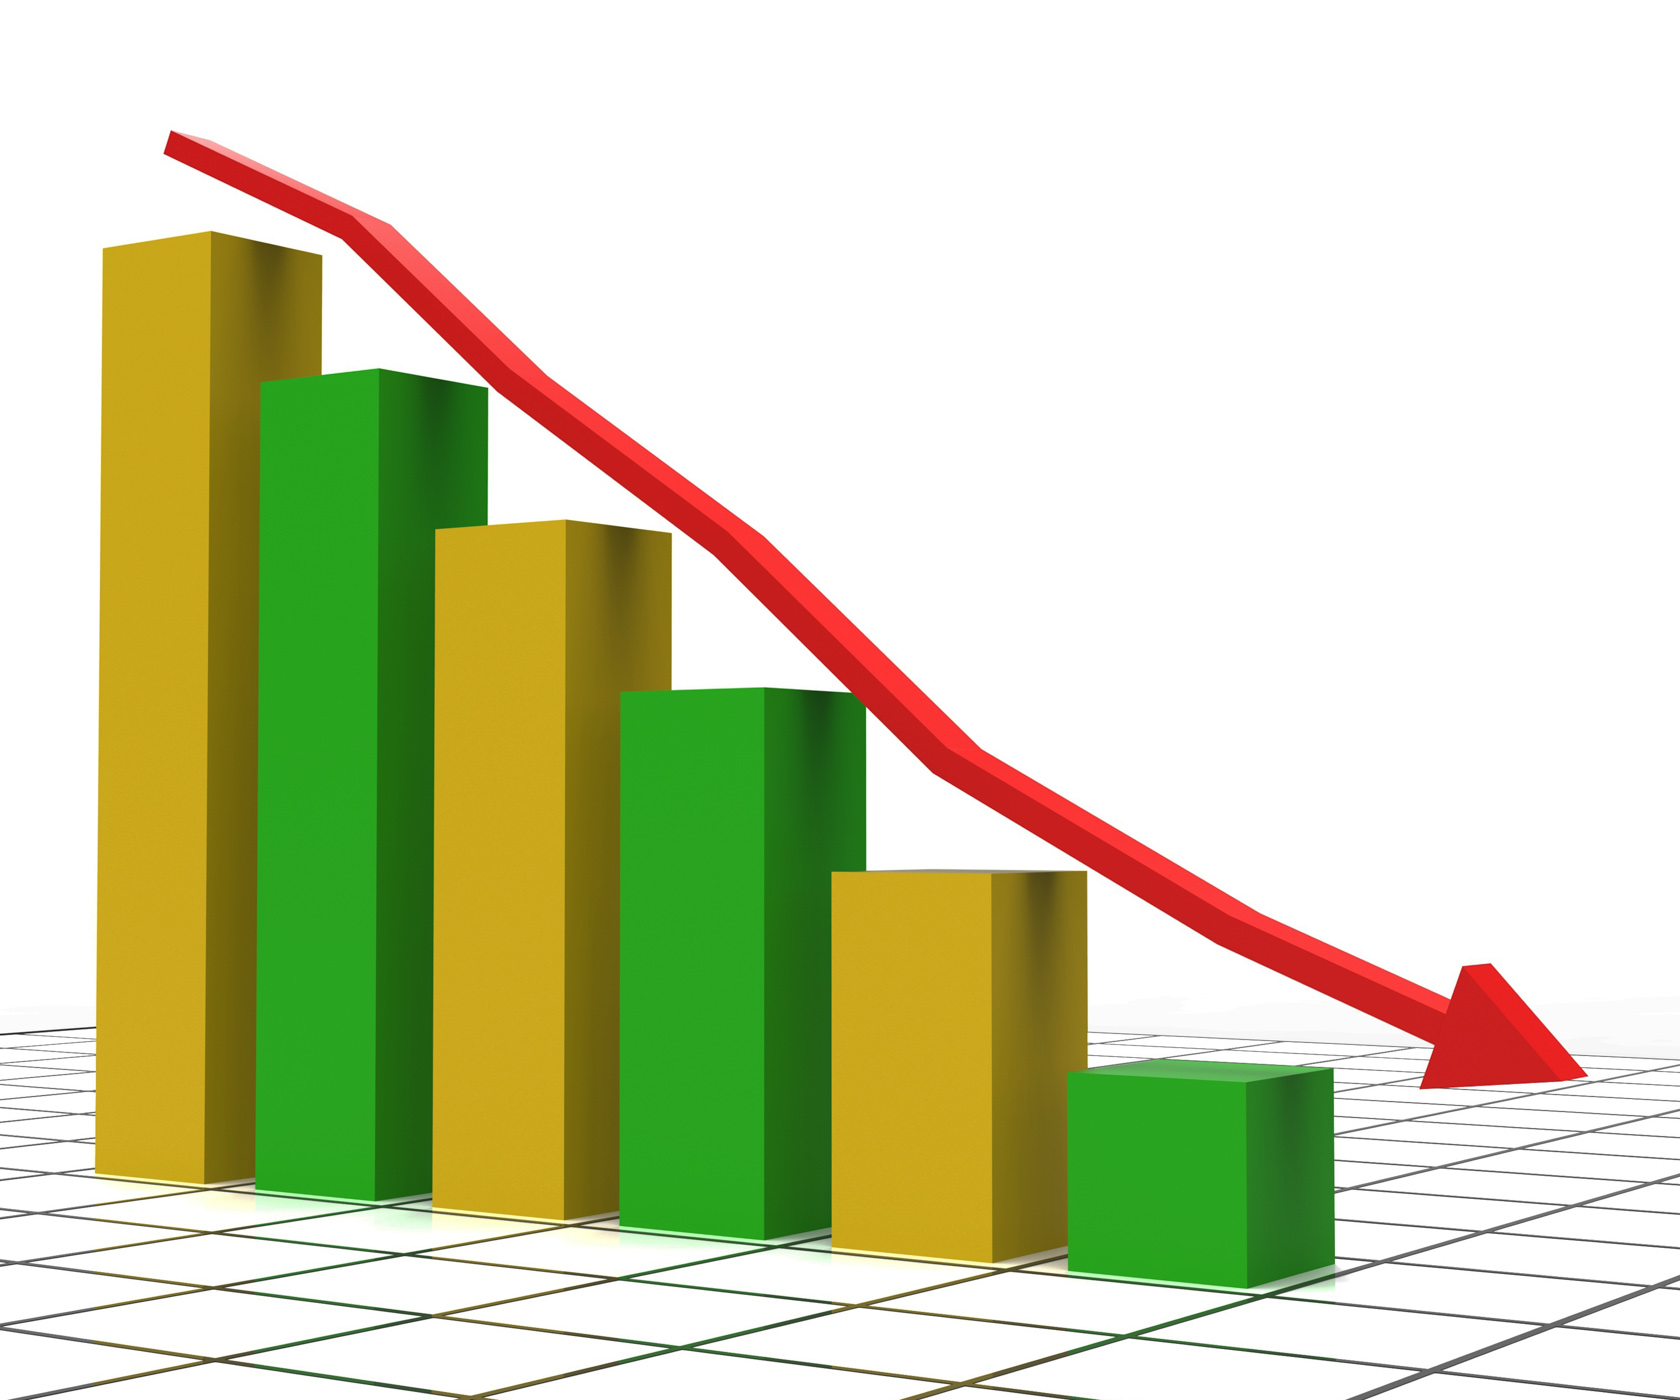 Decreasing Report Shows Graphic Analysis And Graphs, Graphics, Statistics, Statistical, Statistic, HQ Photo